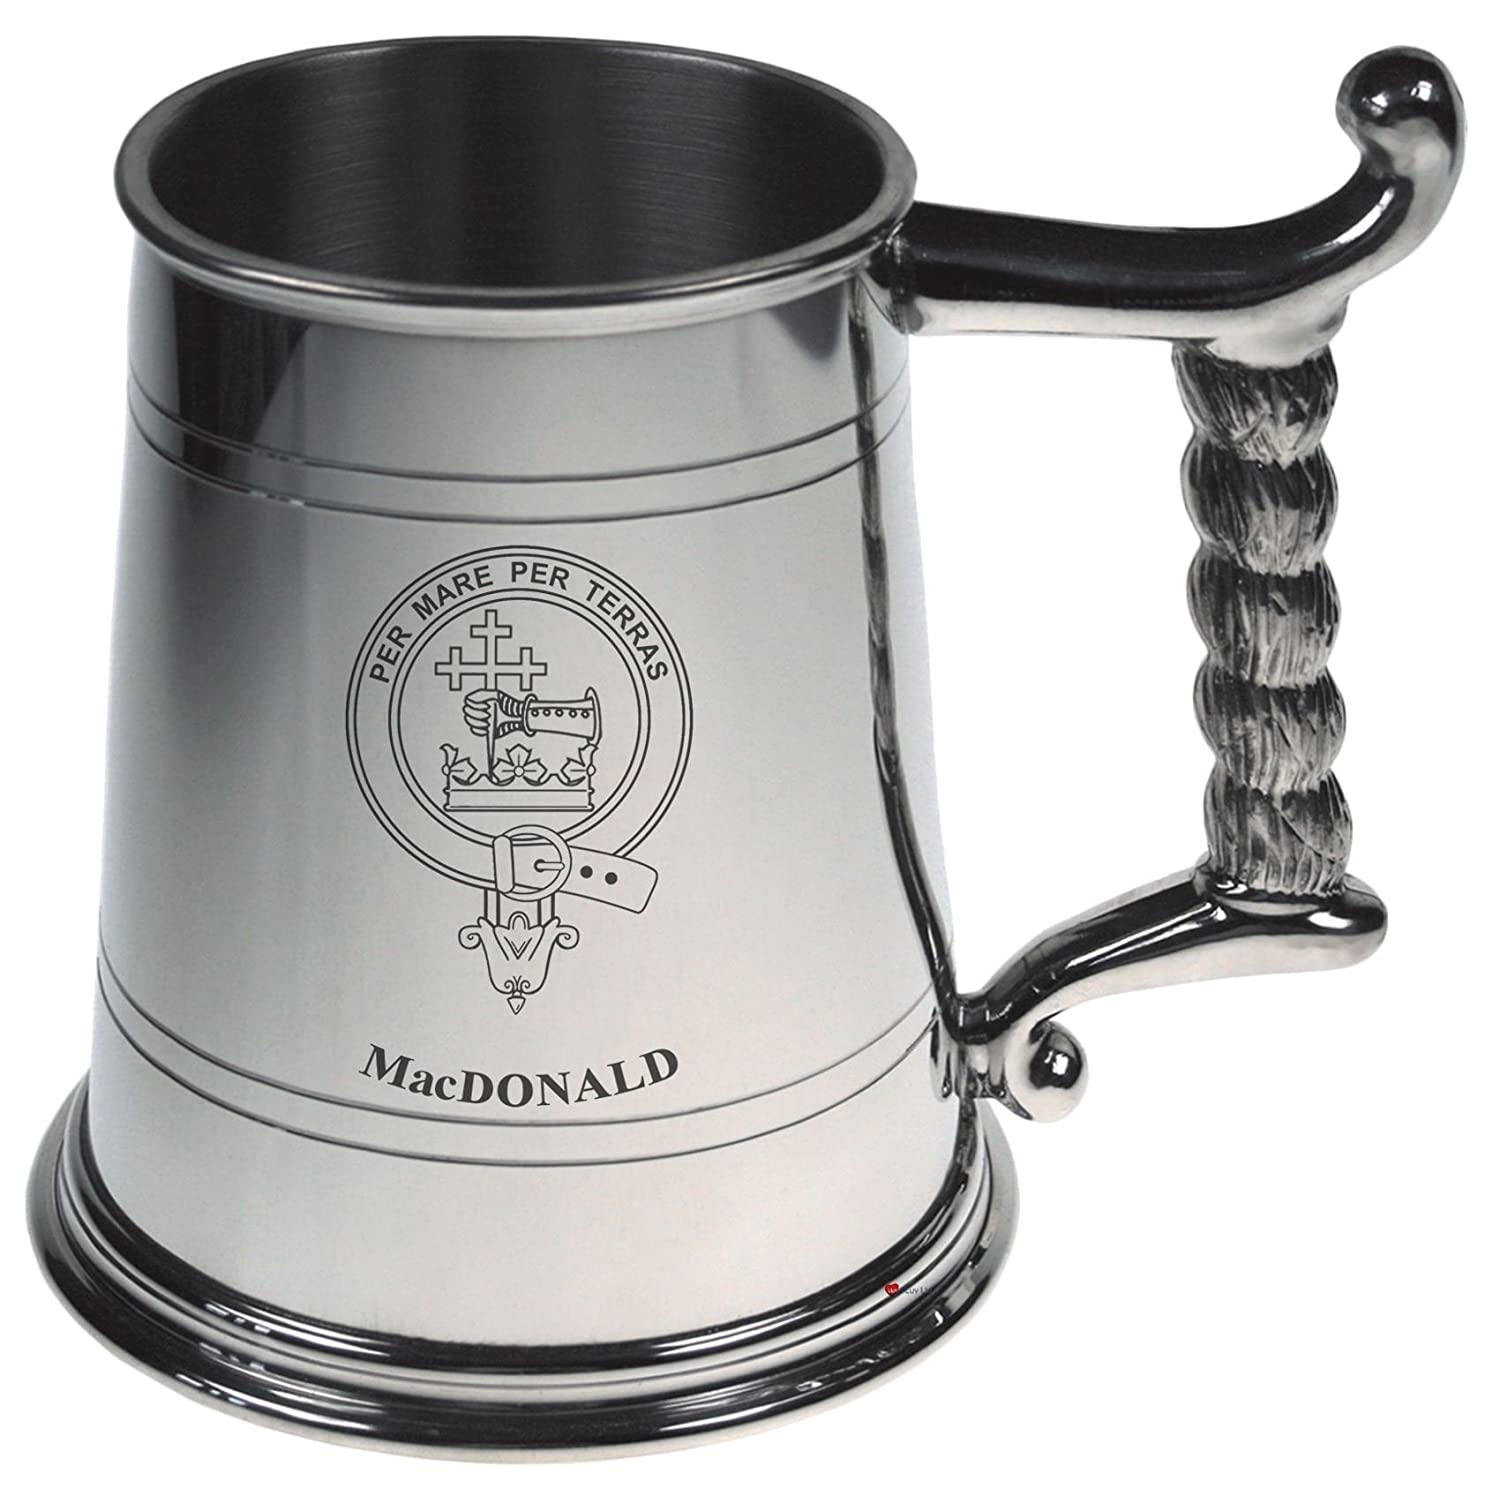 MacDonald Crest Tankard with Rope Handle in Polished Pewter 1 Pint Capacity I Luv Ltd